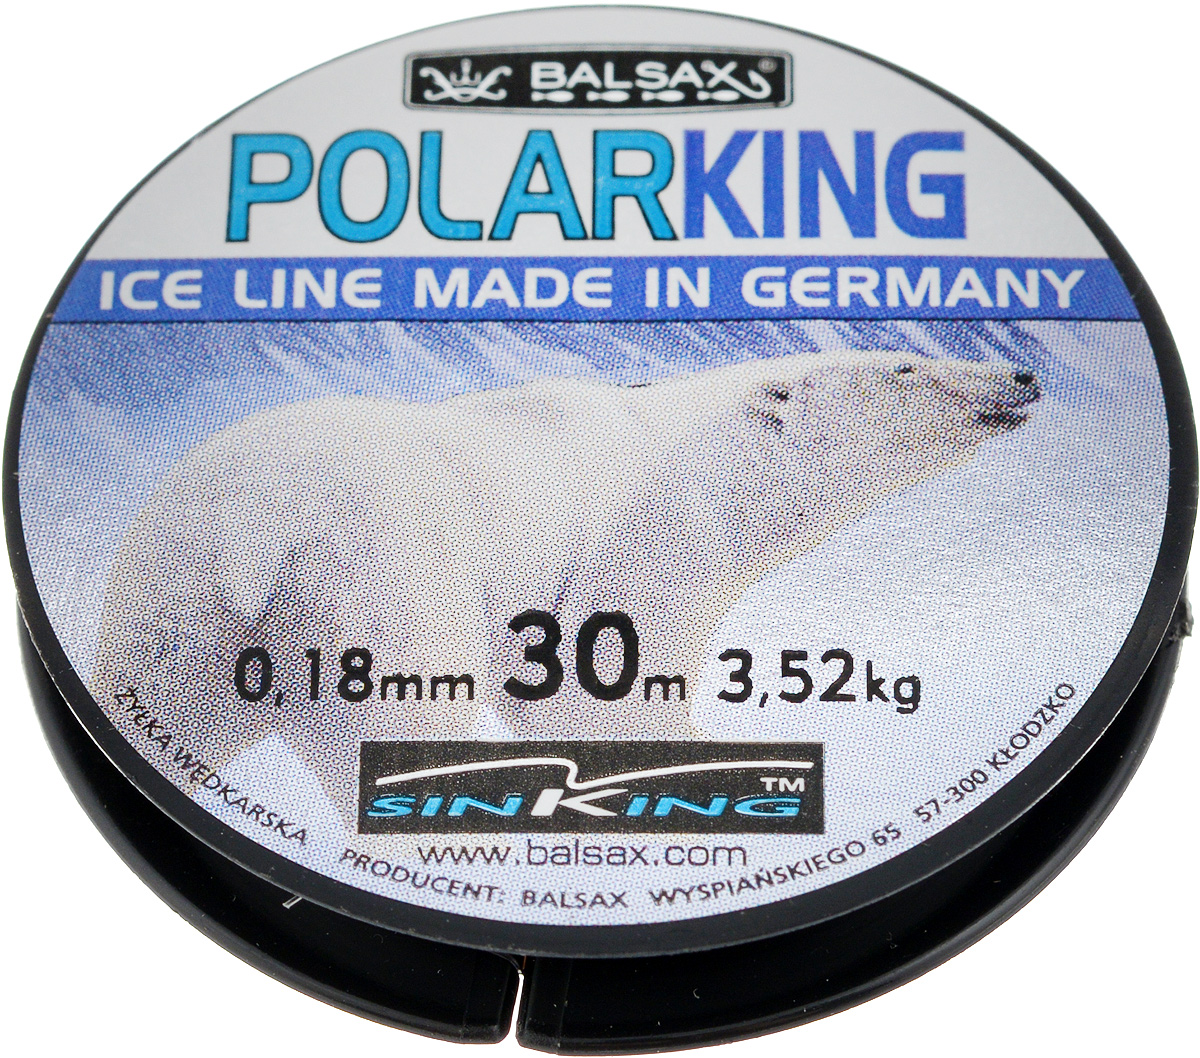 Леска зимняя Balsax Polar King, 30 м, 0,18 мм, 3,52 кг